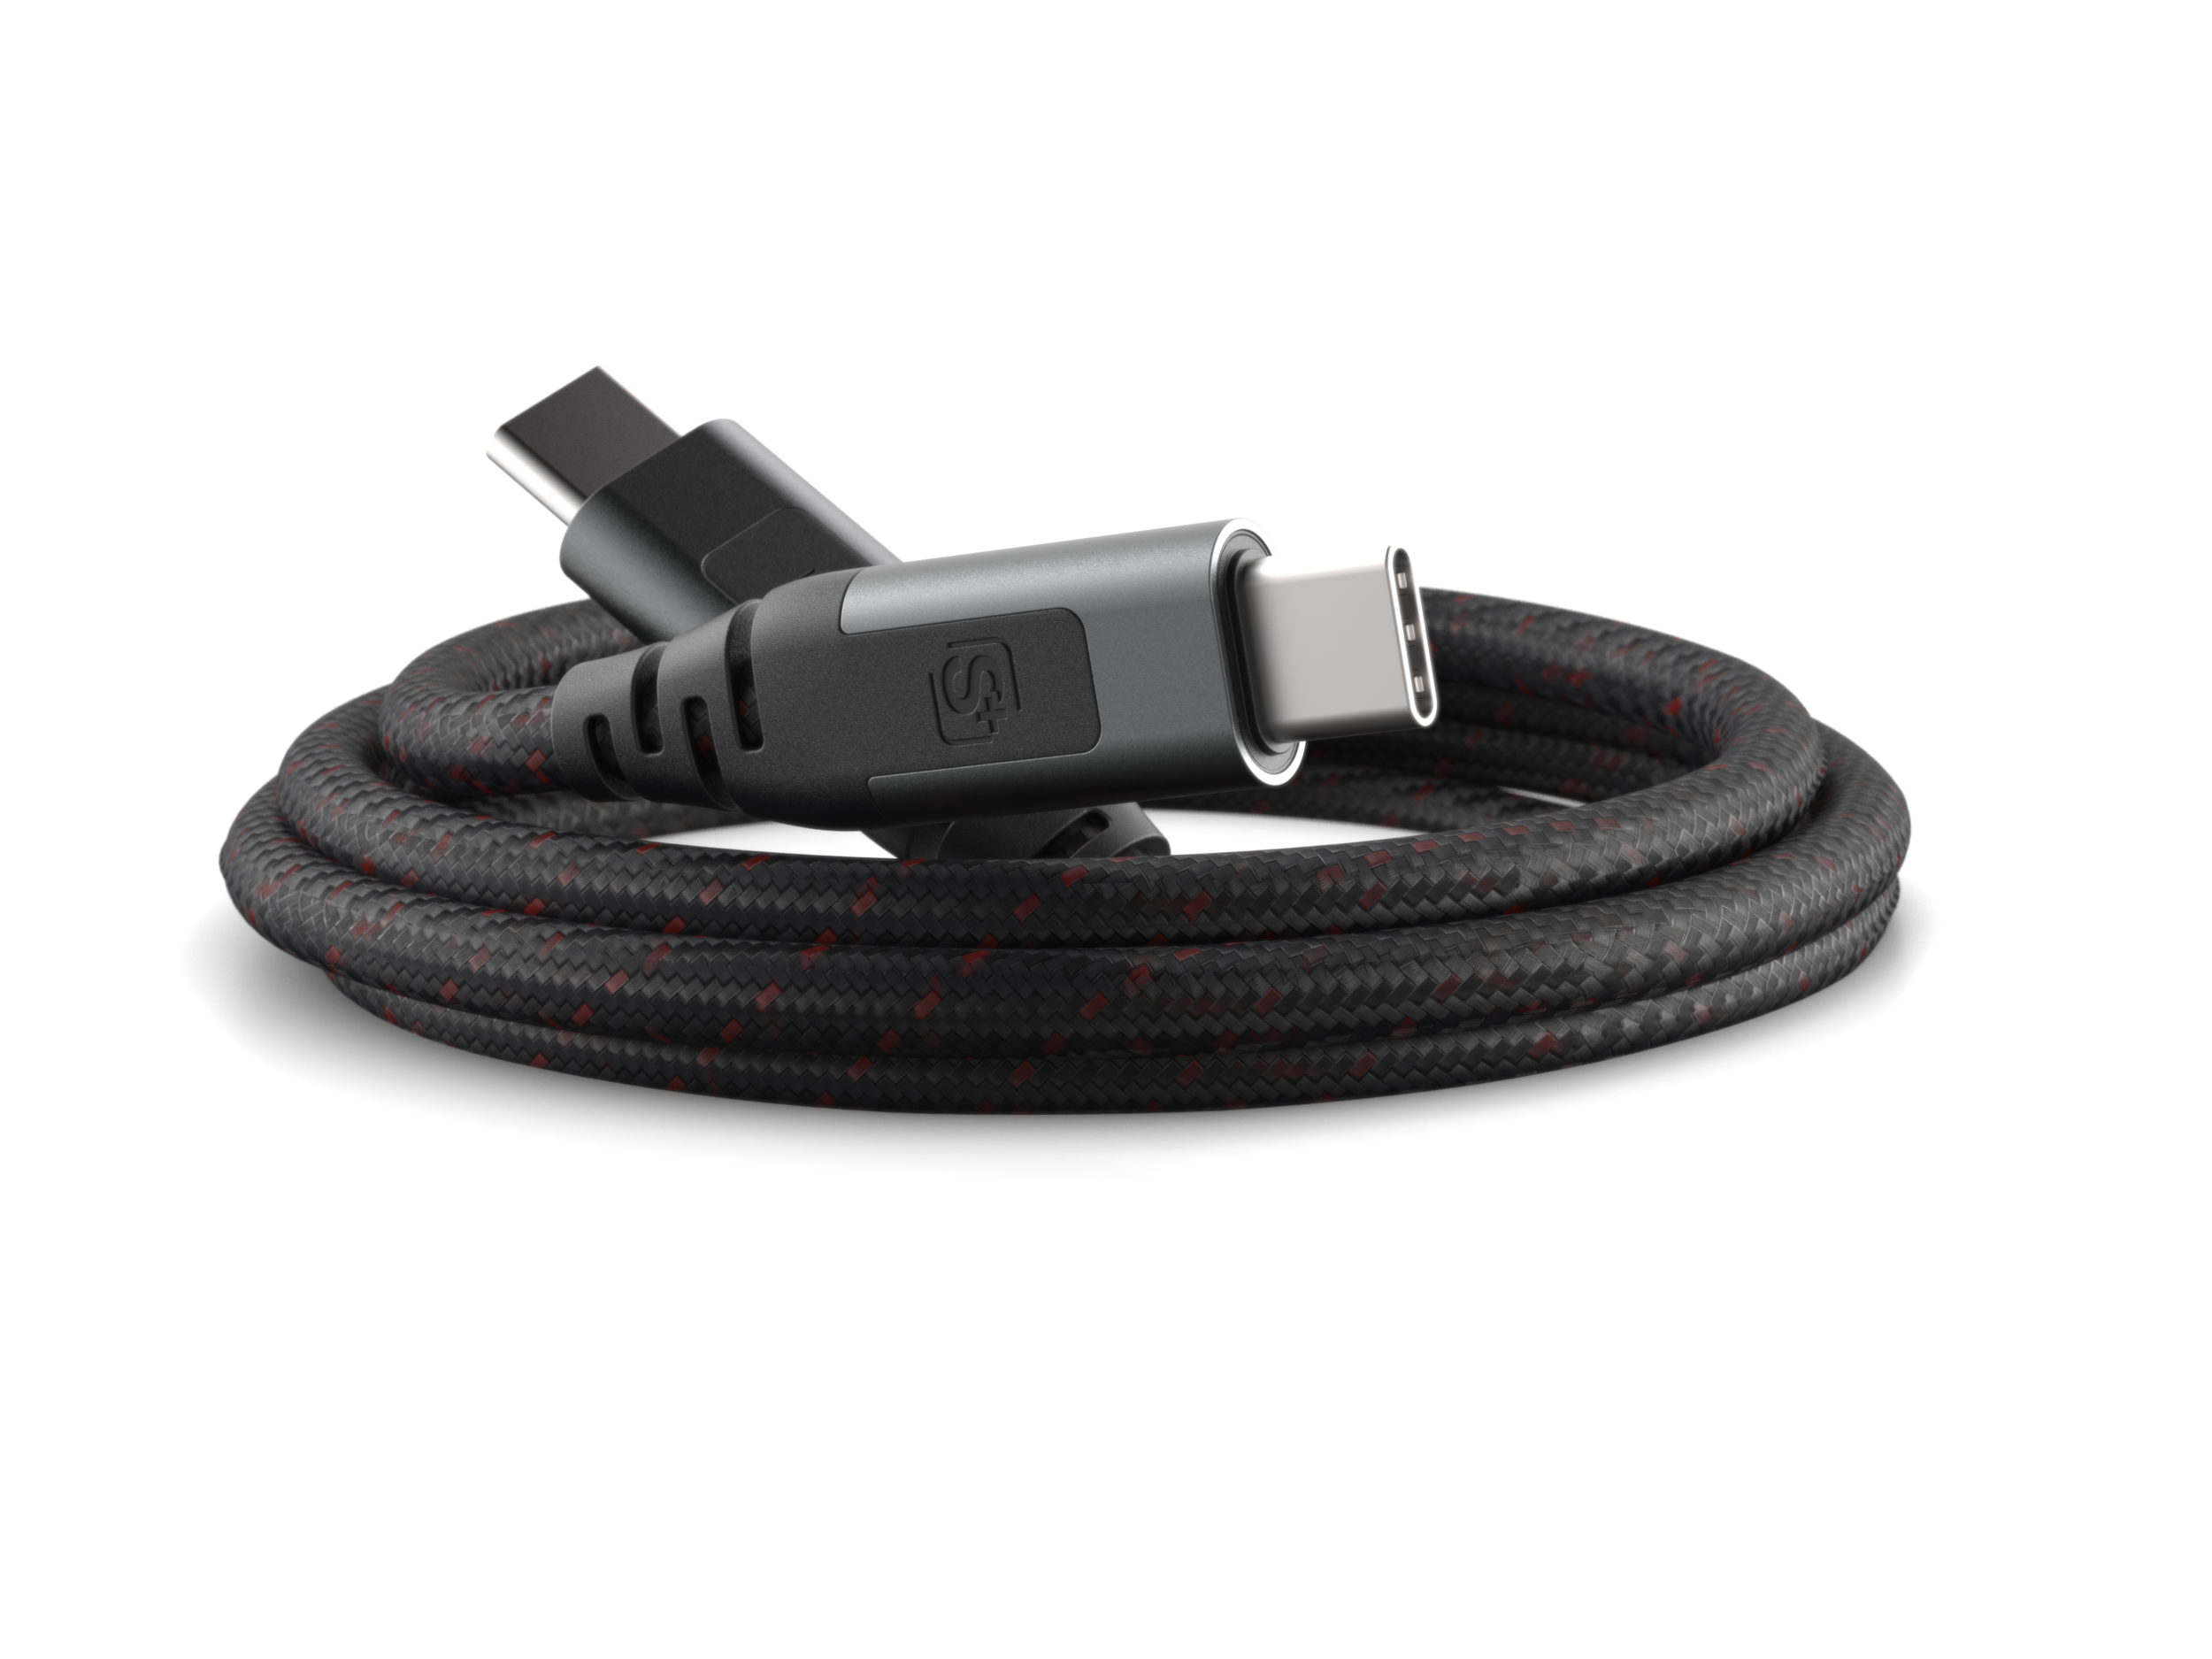 1.8m Armored Sync/Charge Cable USB-C to USB-C with Hypercharge Power Delivery